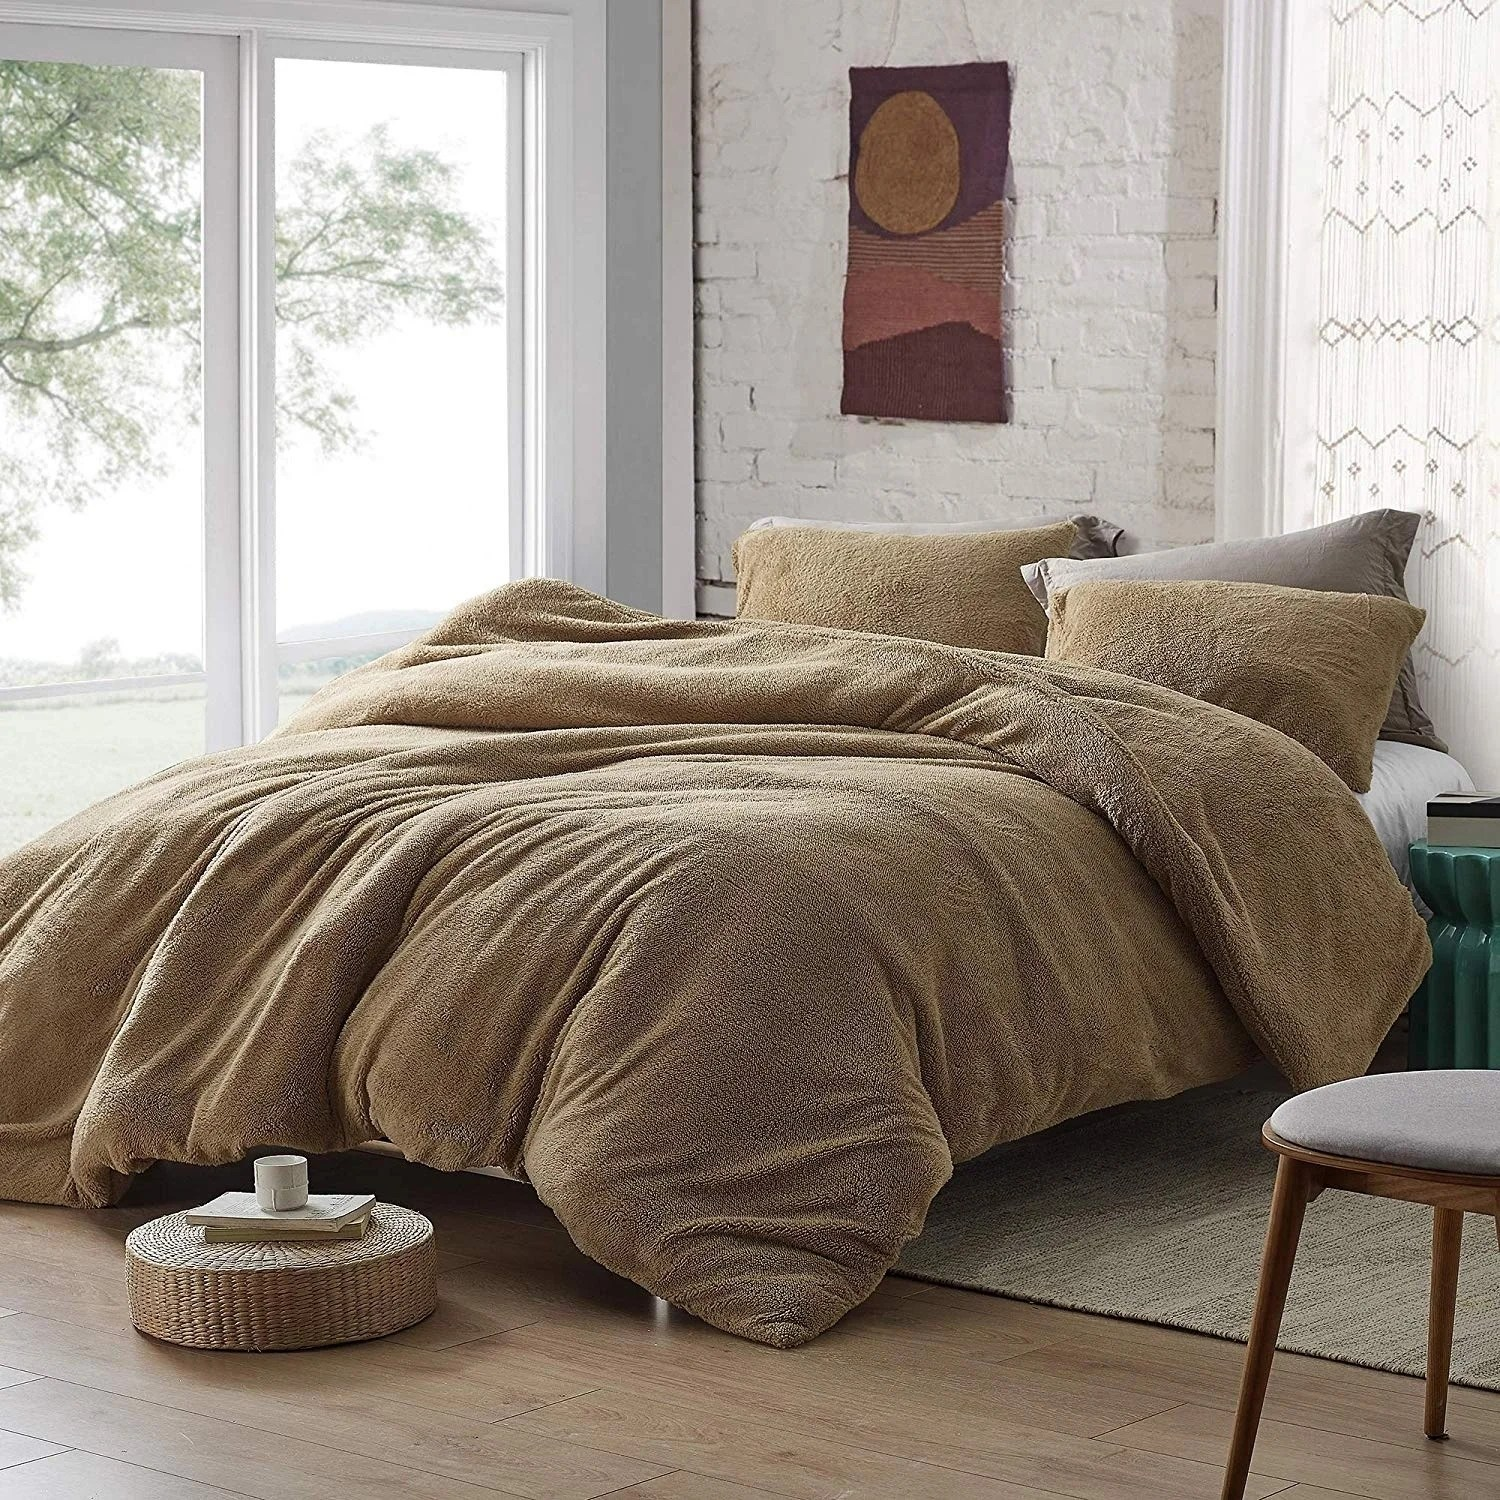 coma inducer duvet cover teddy bear taupe natural